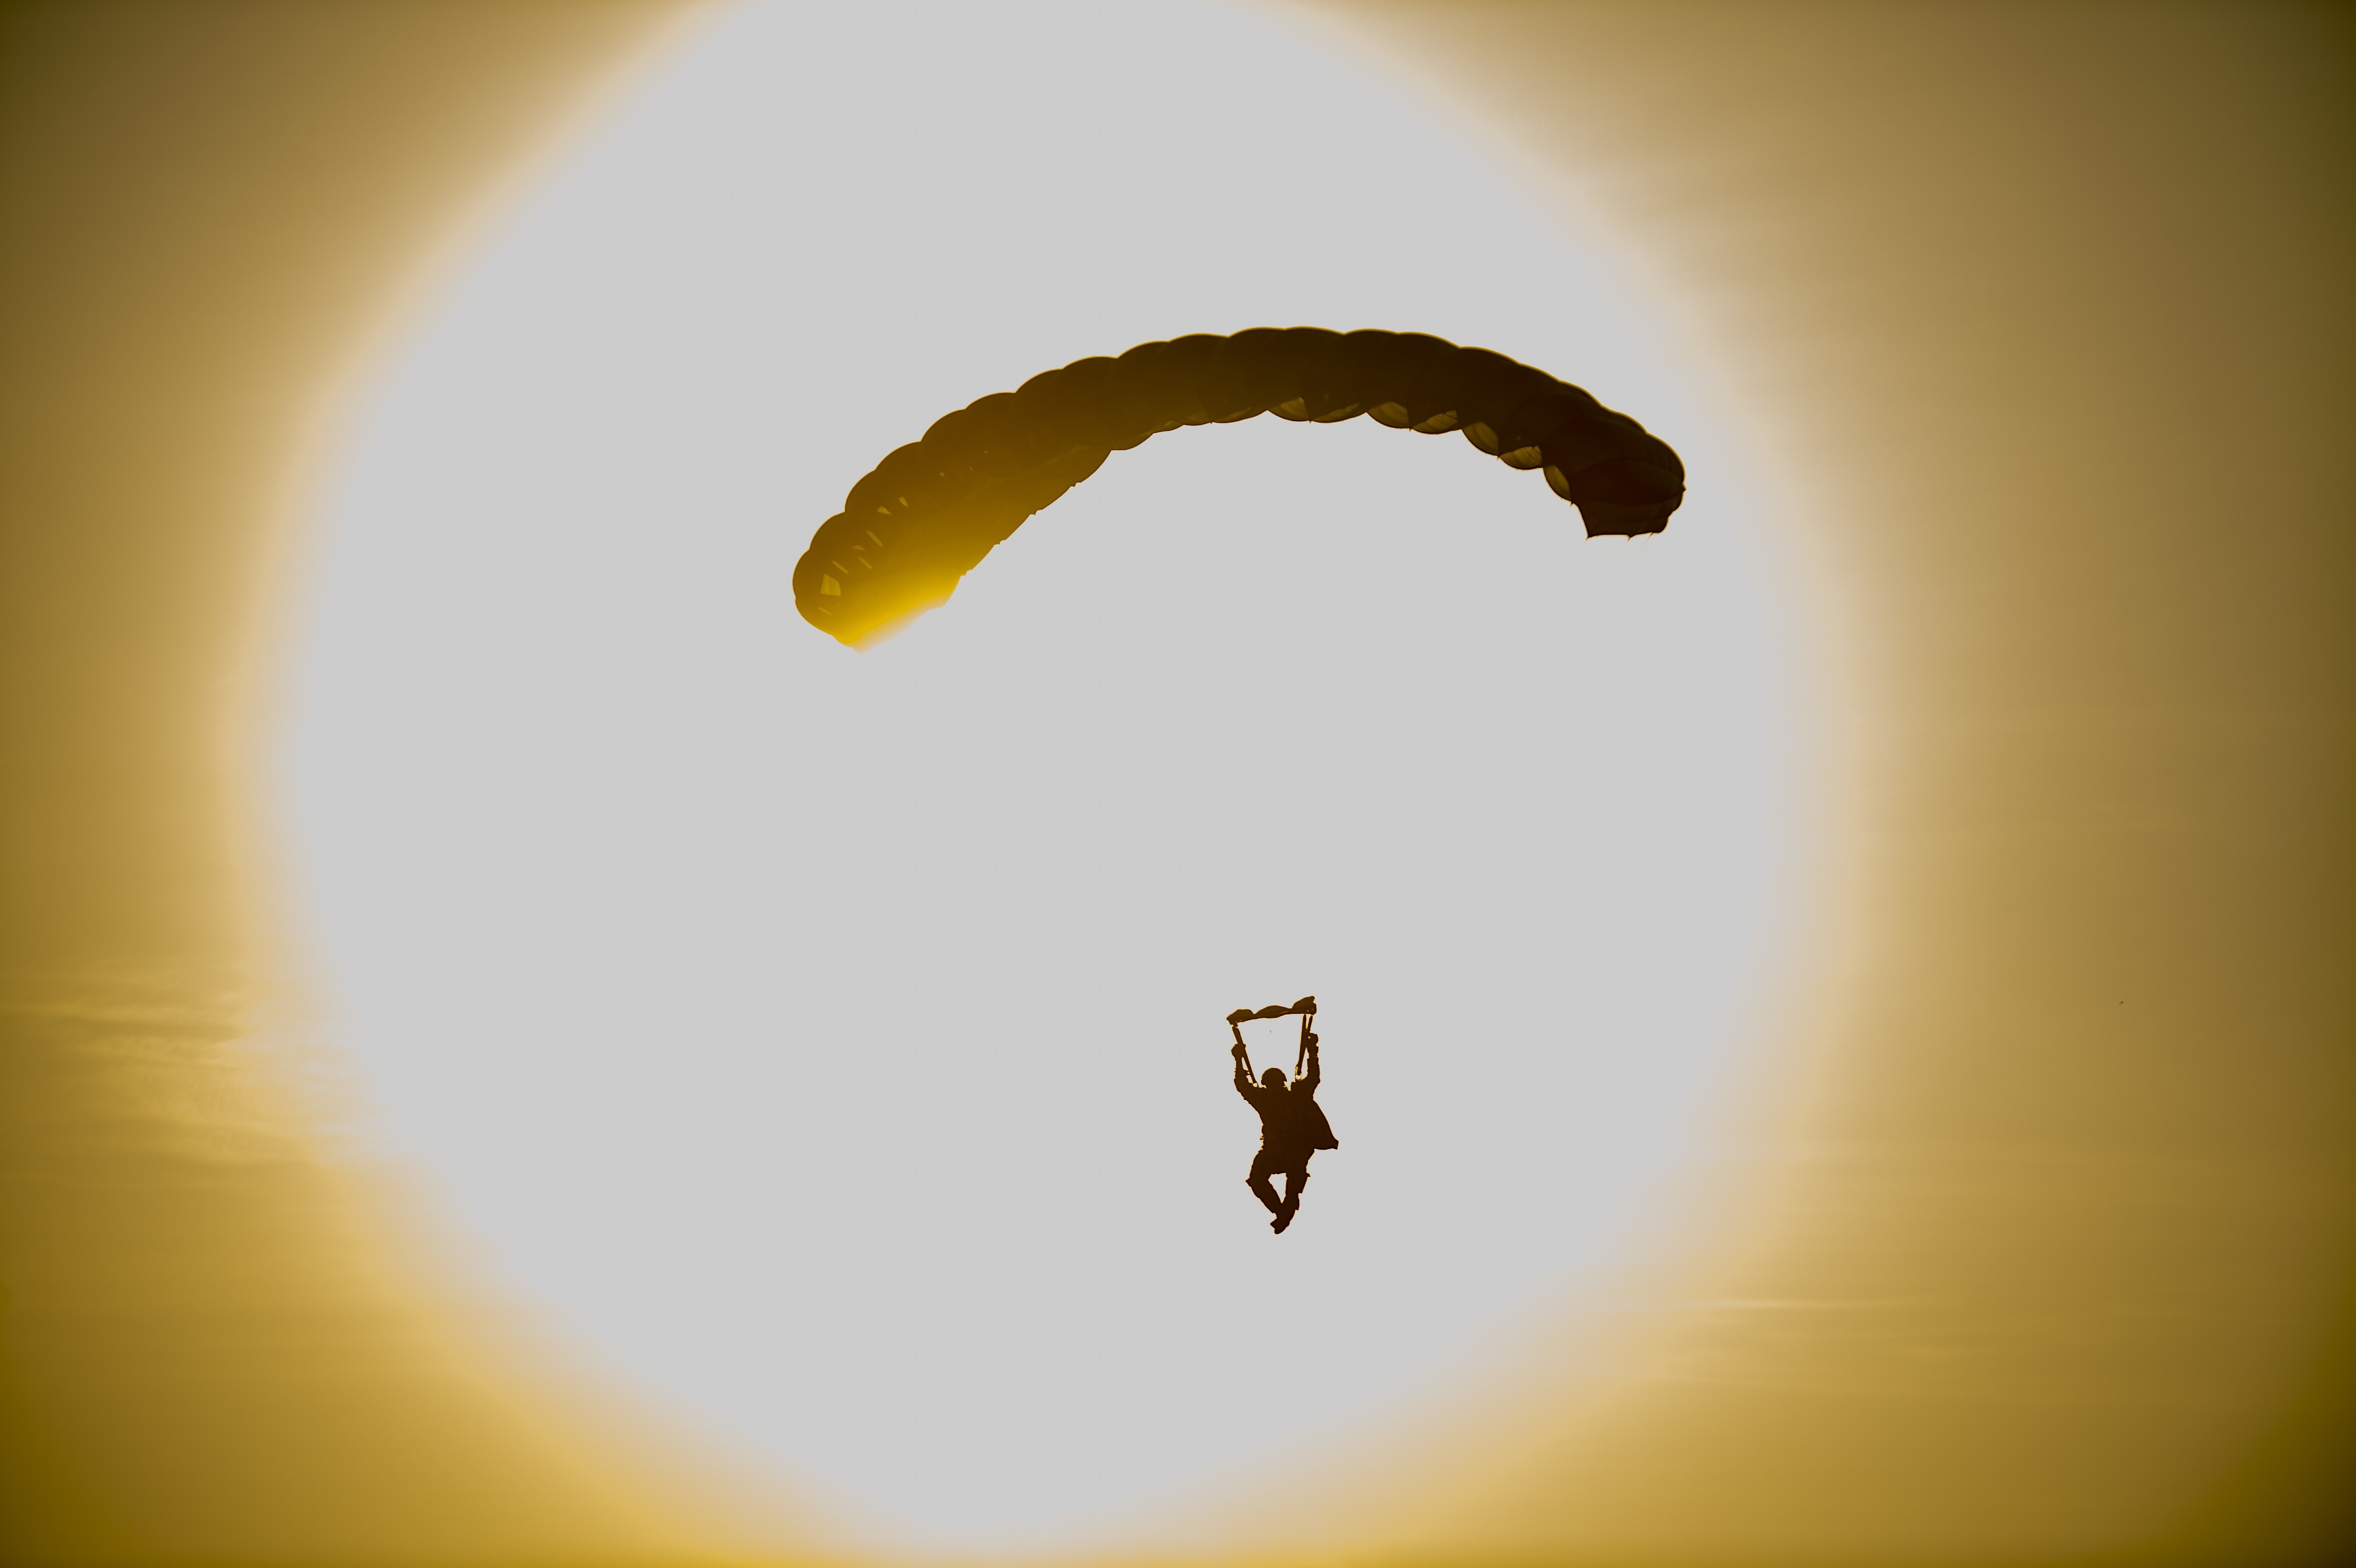 U.S. Army Reserve and active duty Soldiers perform an airborne operations jump from UH-60 Black Hawk helicopters at Fort Bragg, North Carolina, July 17, 2020. Soldiers who are assigned to airborne units must complete a parachute jump every three months to retain jump certification. Soldiers who jumped on this day included members from the U.S. Army Civil Affairs & Psychological Operations Command (Airborne) headquarters, 824th Quartermaster Company, the 478th Civil Affairs Battalion, and 647th Quartermaster Company among other local units at Fort Bragg. (U.S. Army Reserve photo by Master Sgt. Michel Sauret)